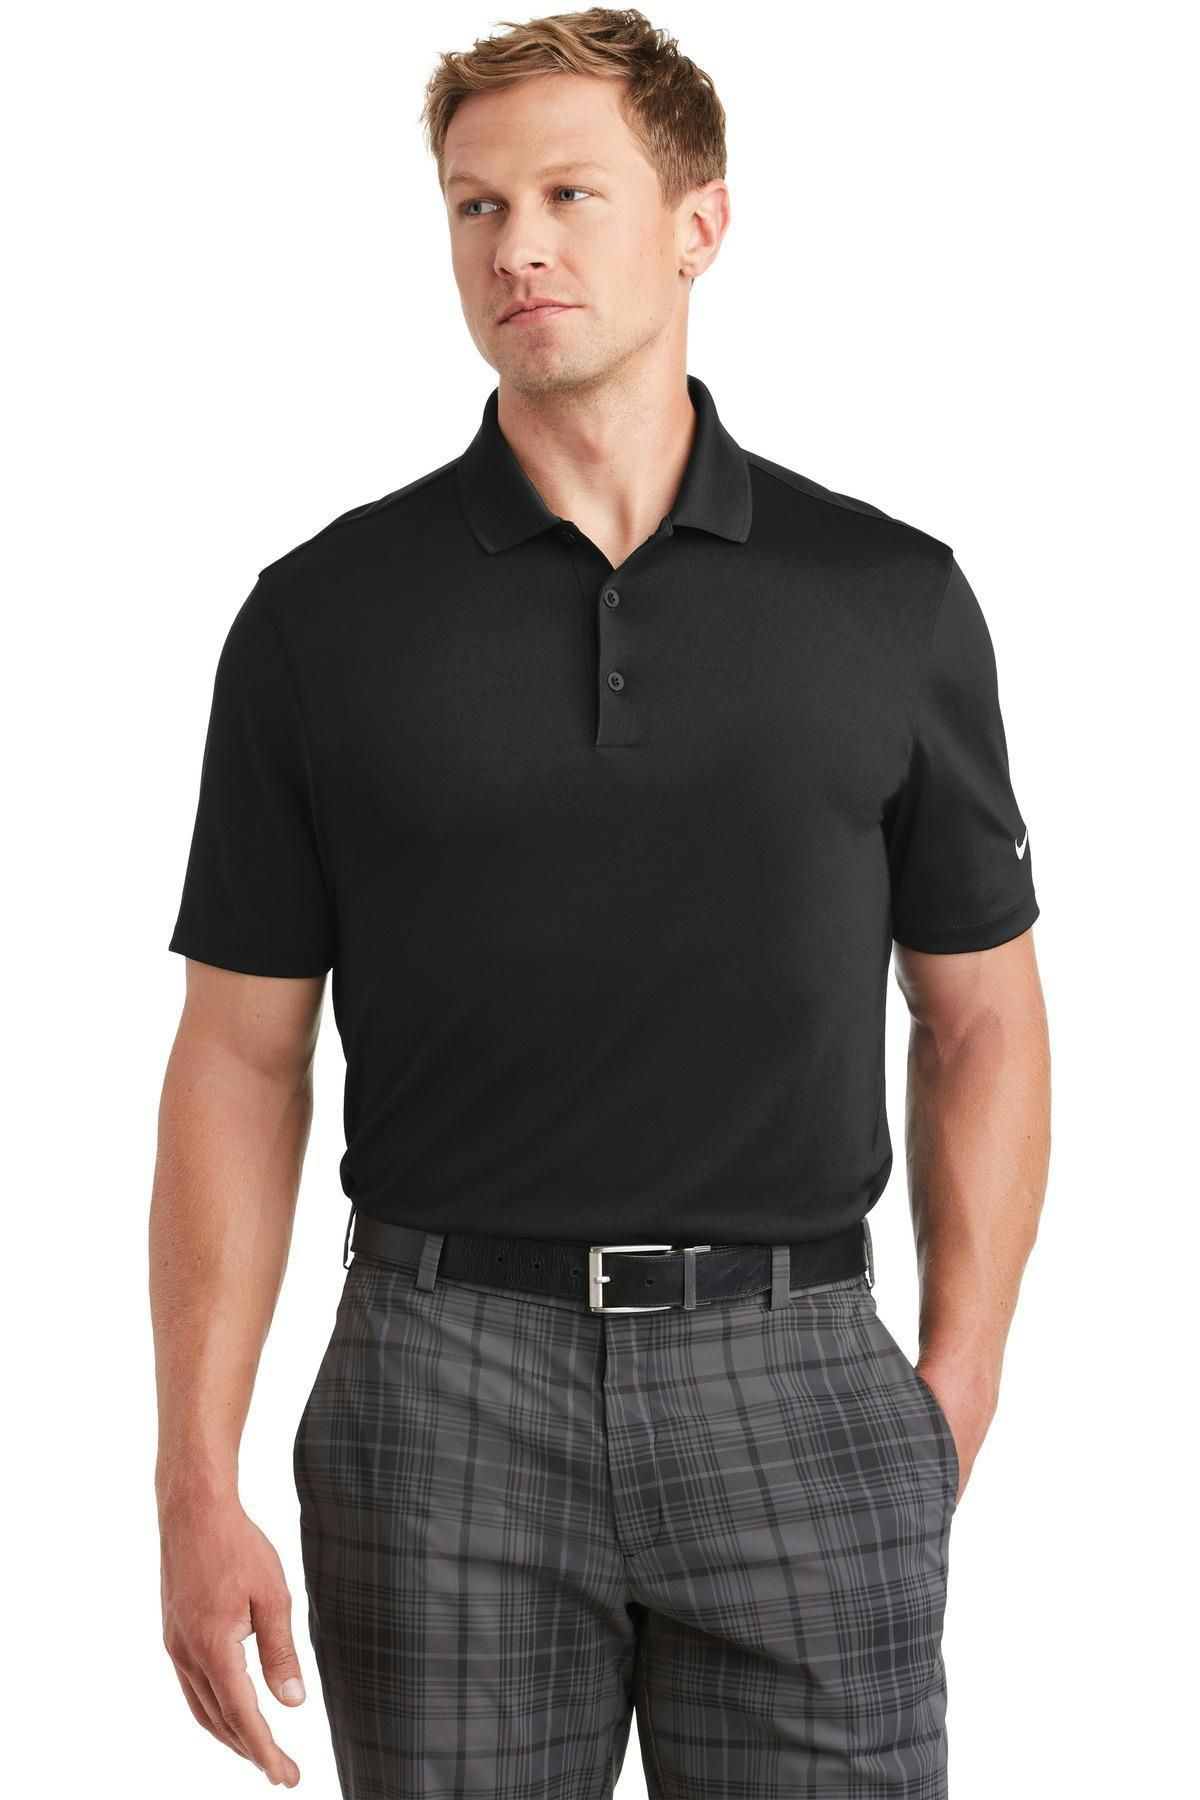 fd4db186 Nike Golf Dri-FIT Players Polo with Flat Knit Collar. 838956 | Products